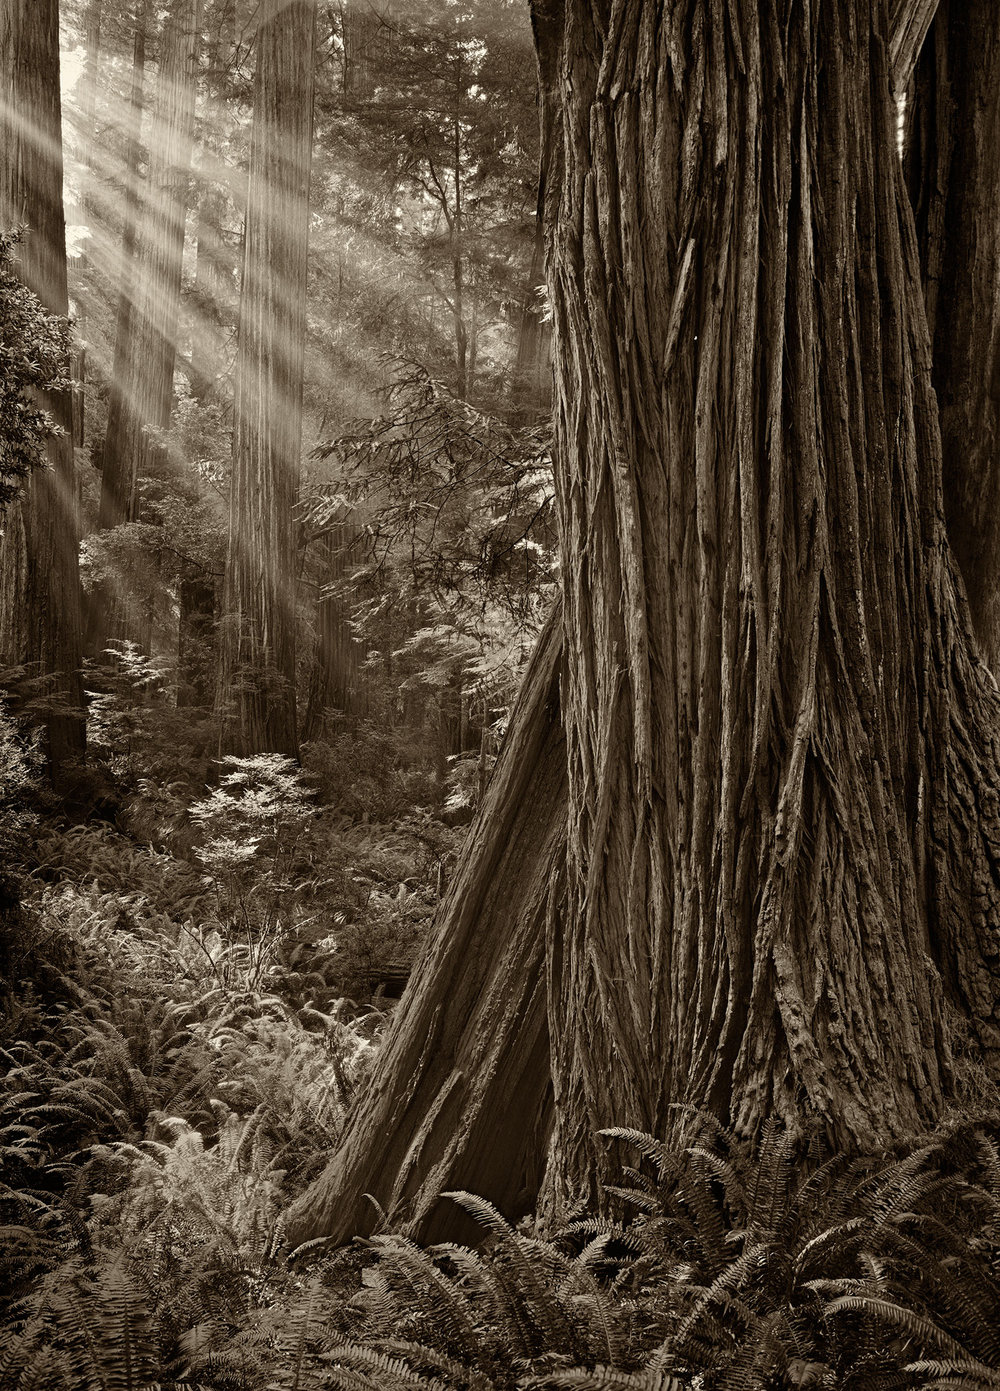 Morning-In-A-Redwood-Grove.jpg